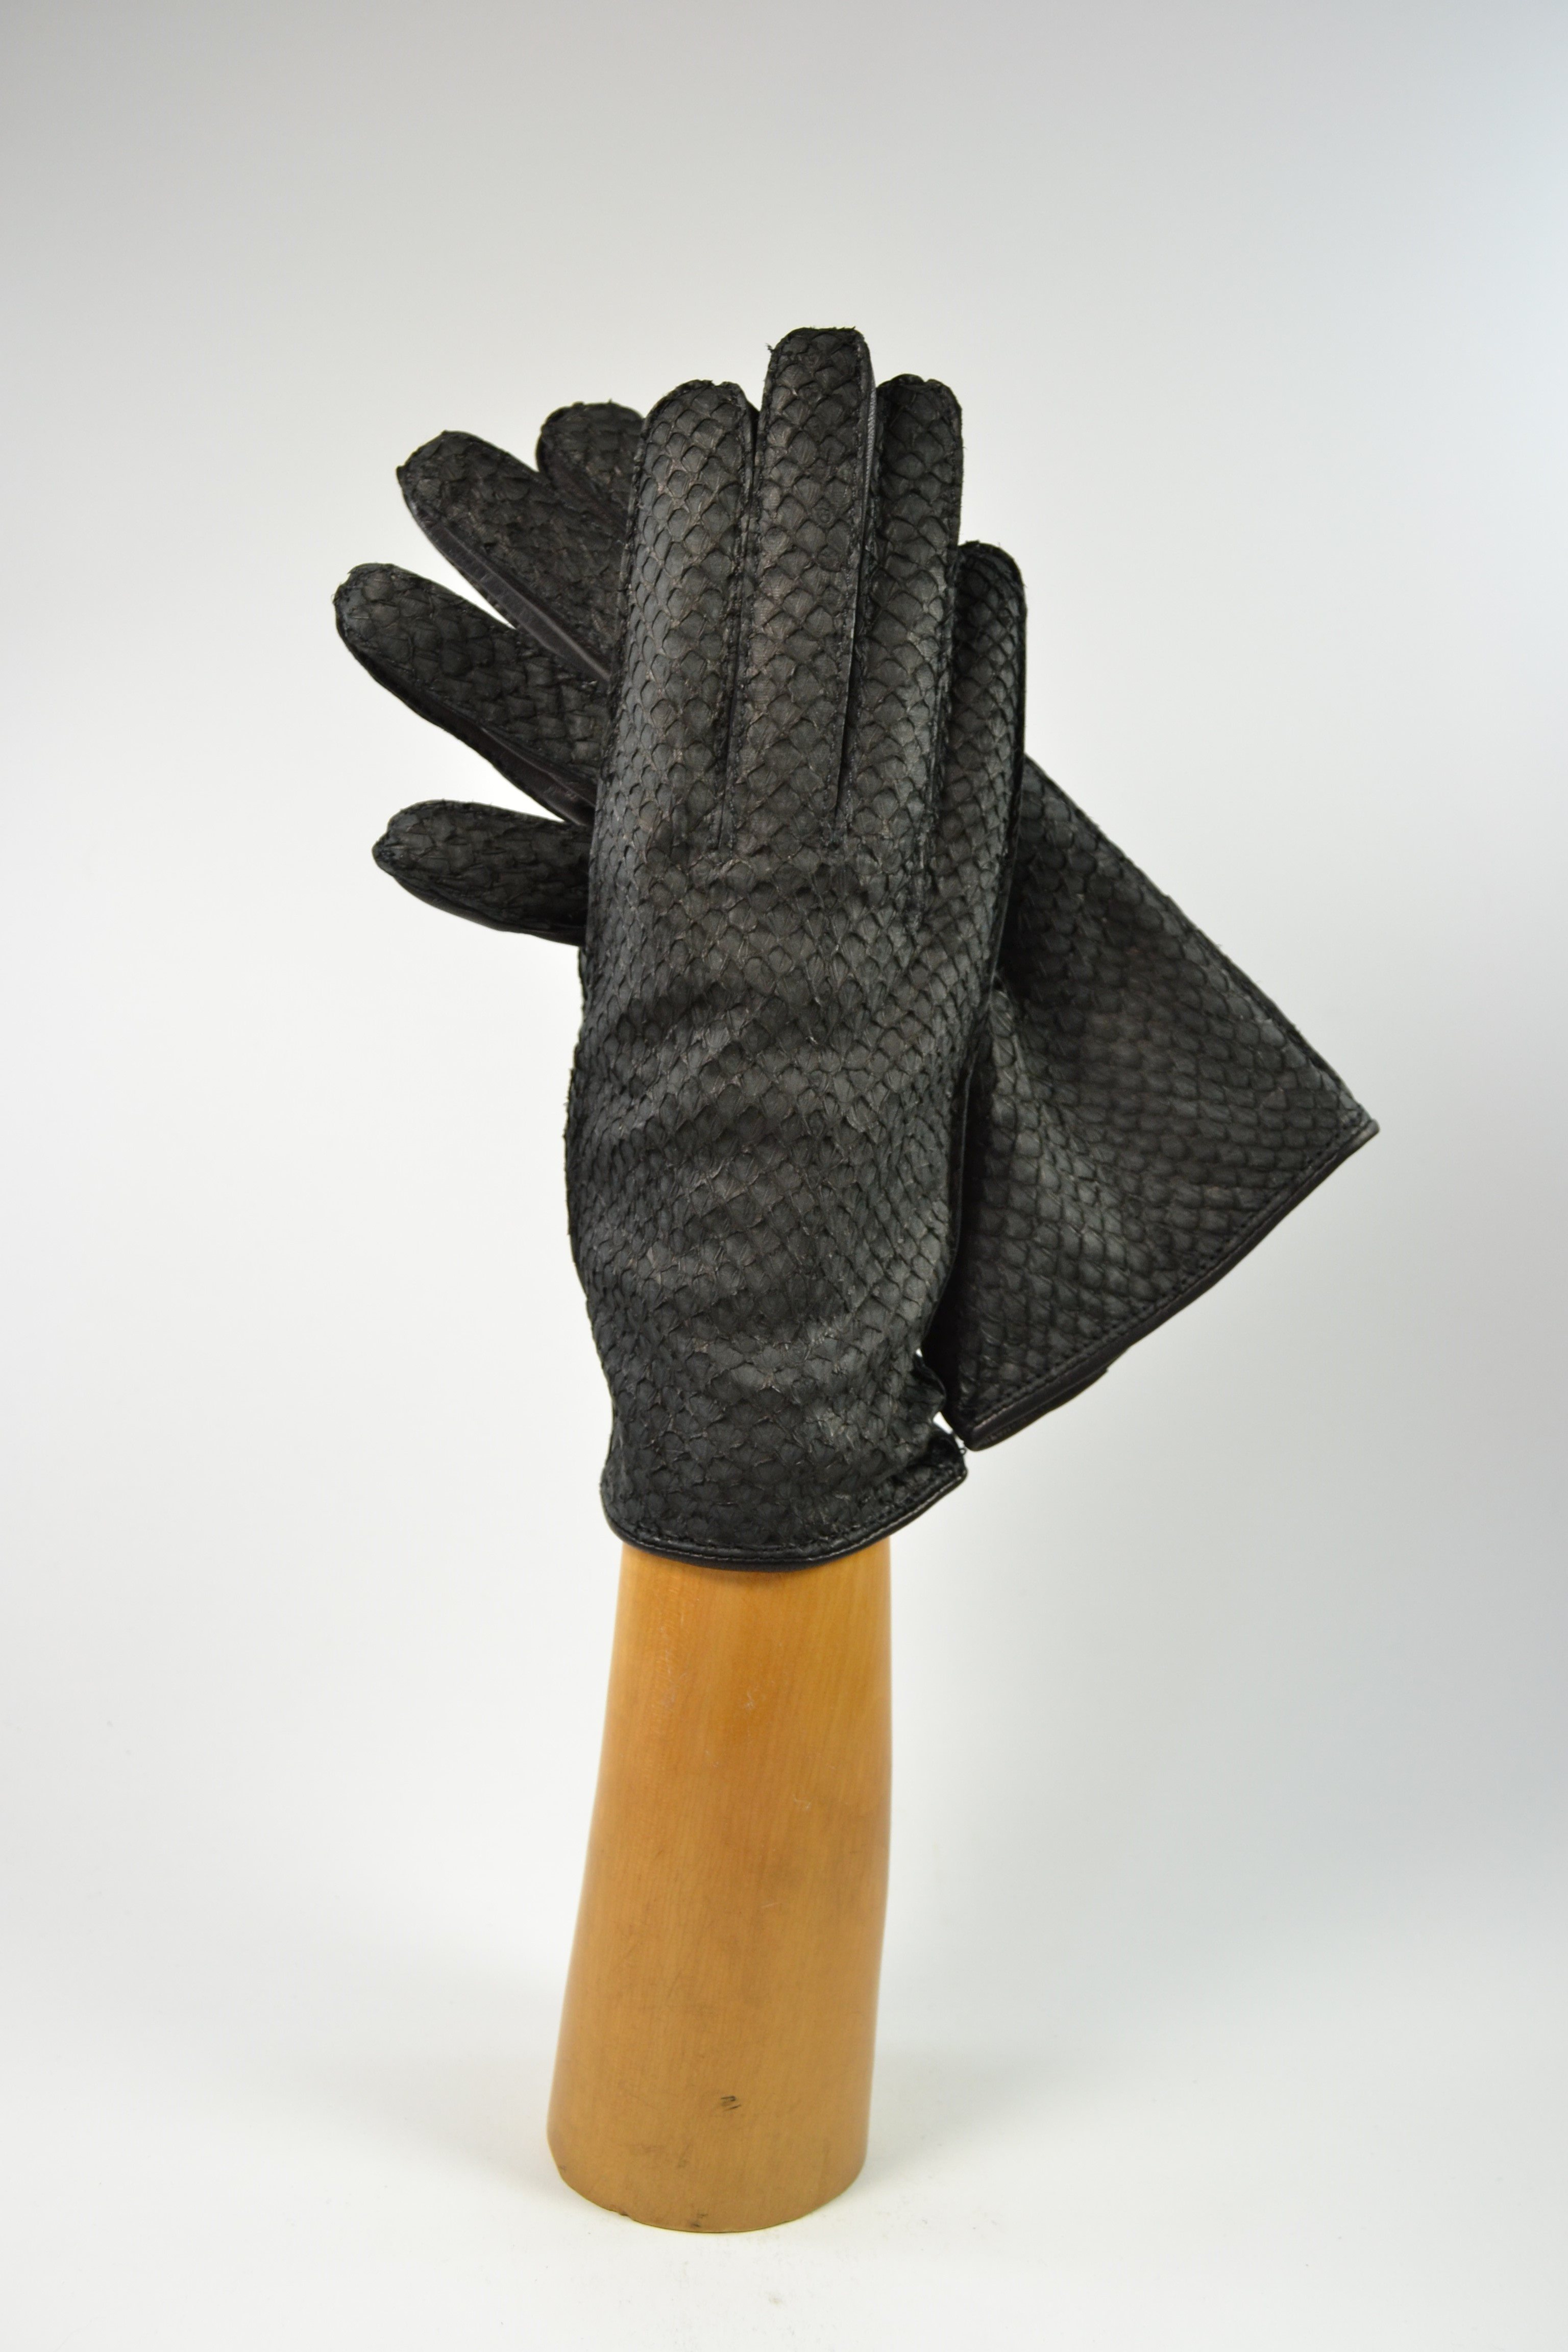 Salmon ladies gloves, cashmere lined, black